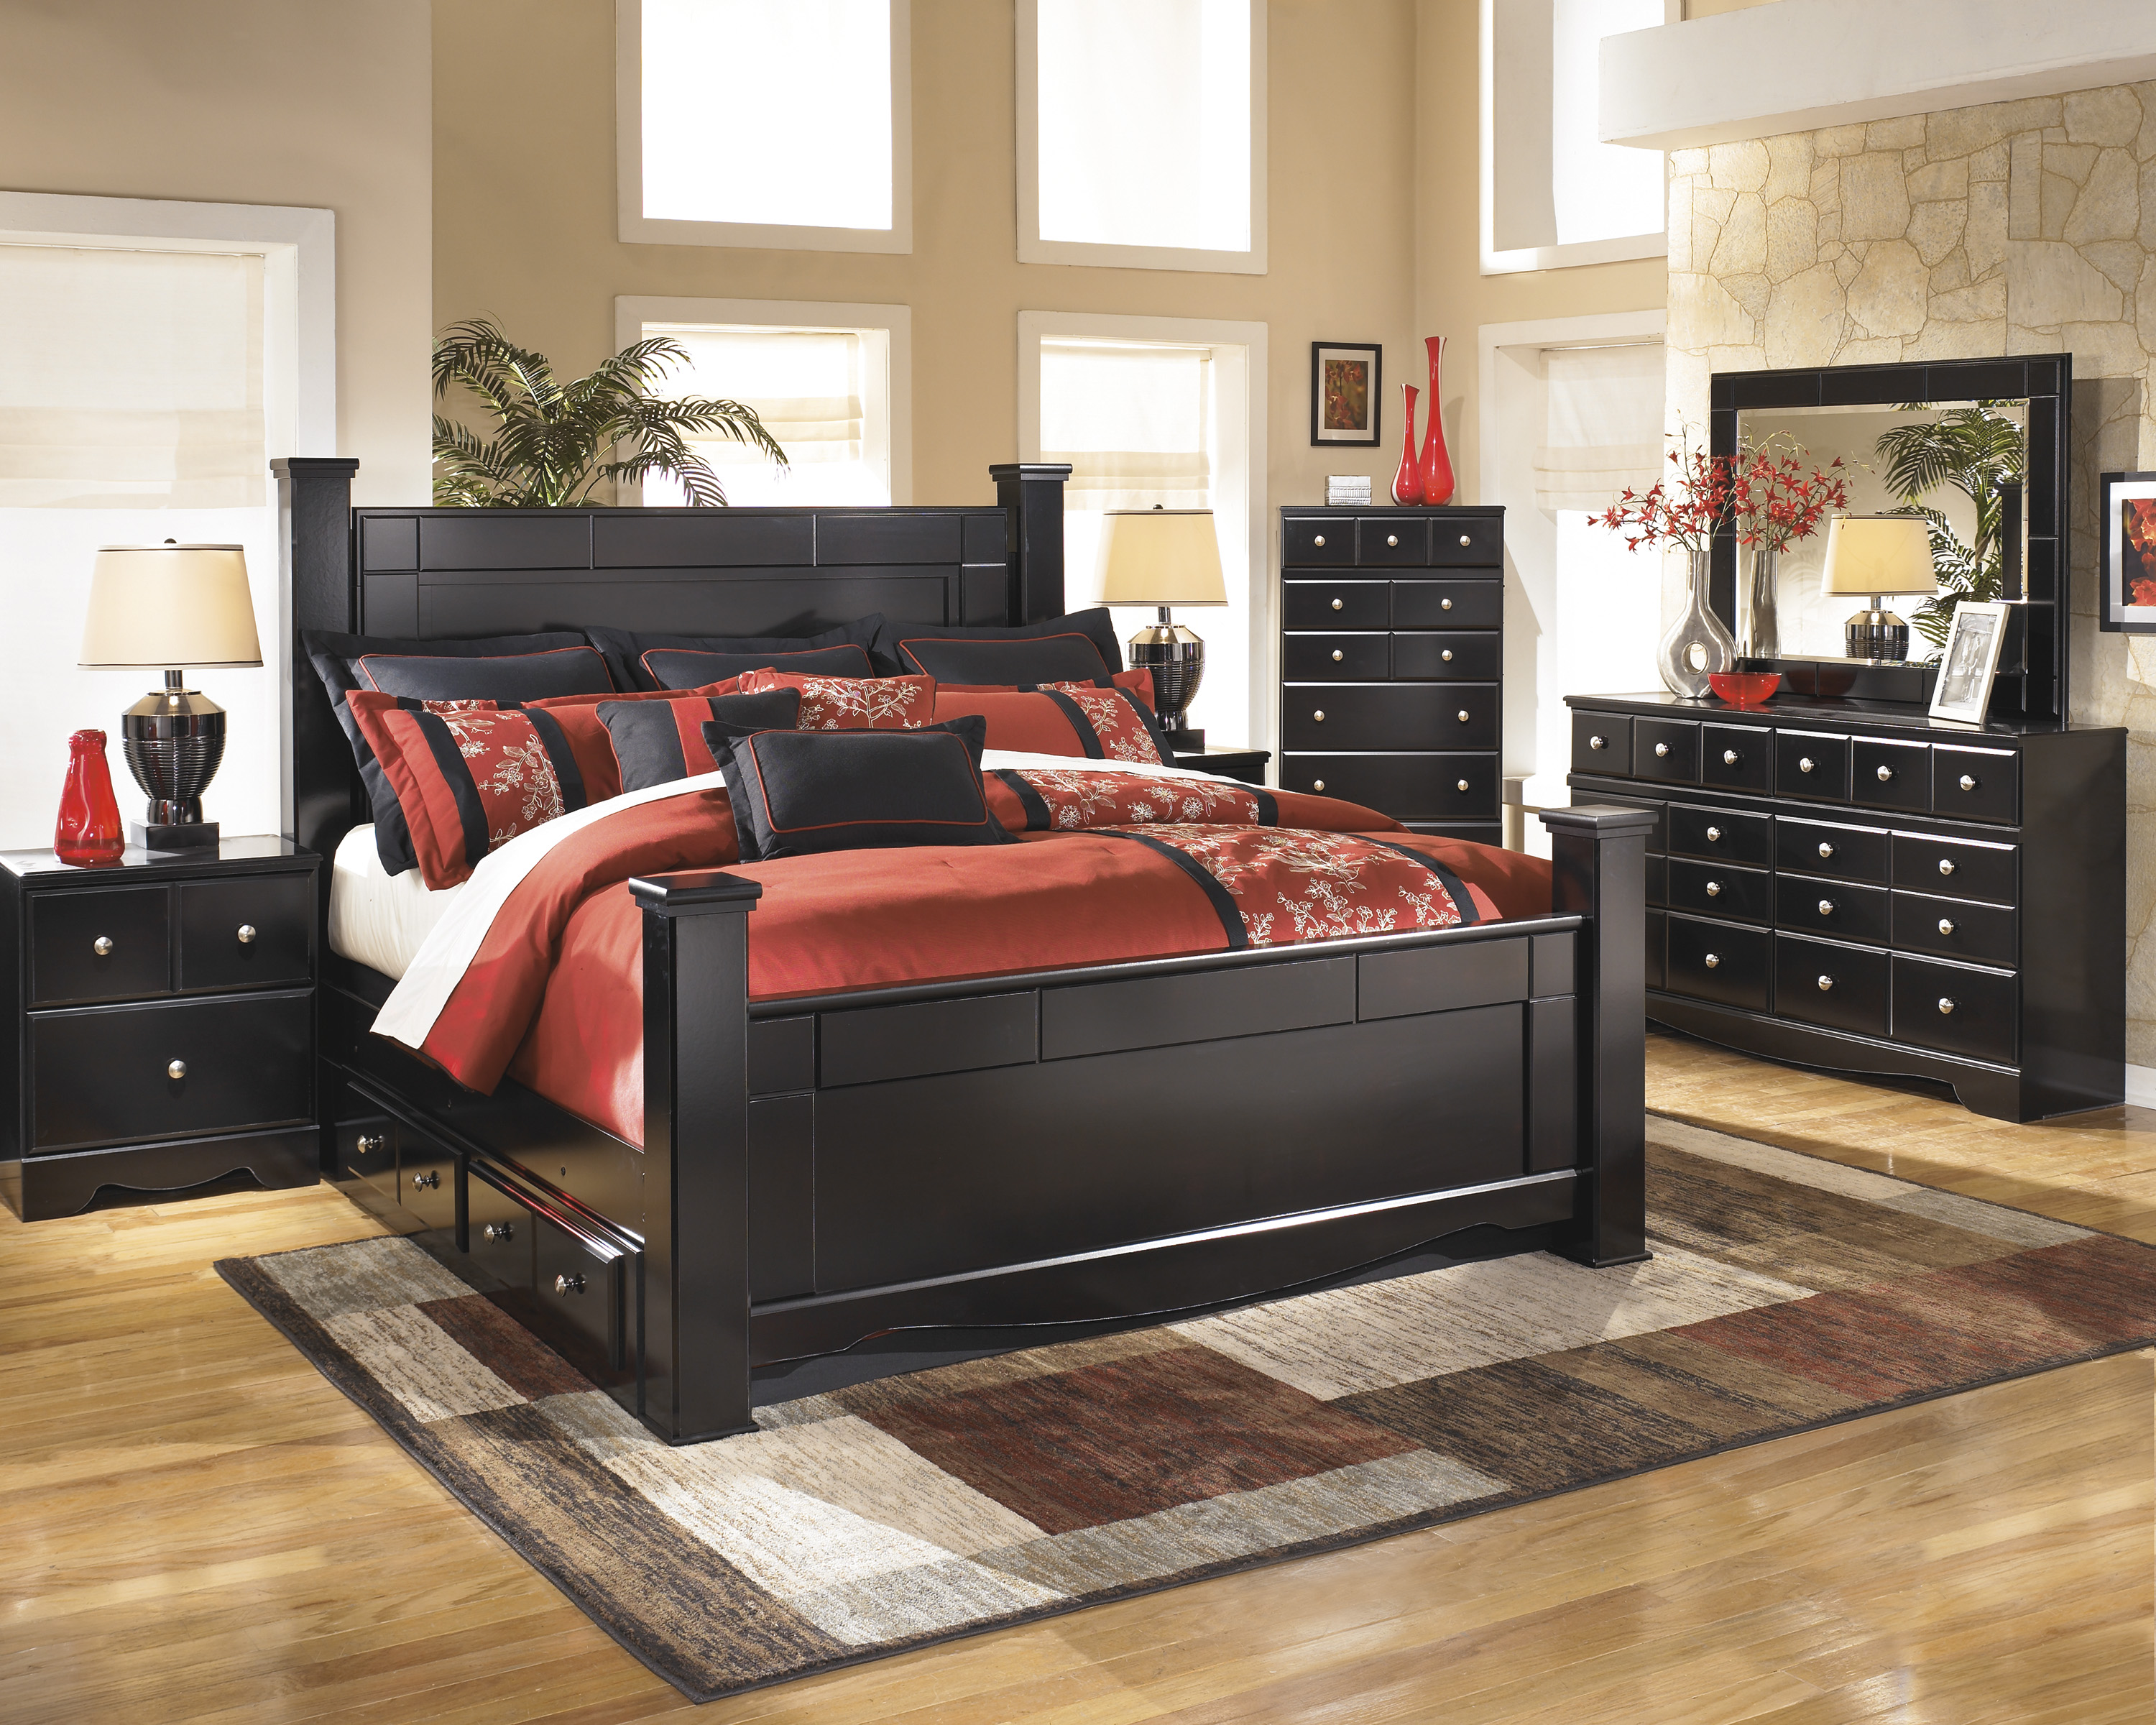 Majik Shay King Poster Storage Bed Dresser Mirror Chest Amp Nightstand Rent To Own